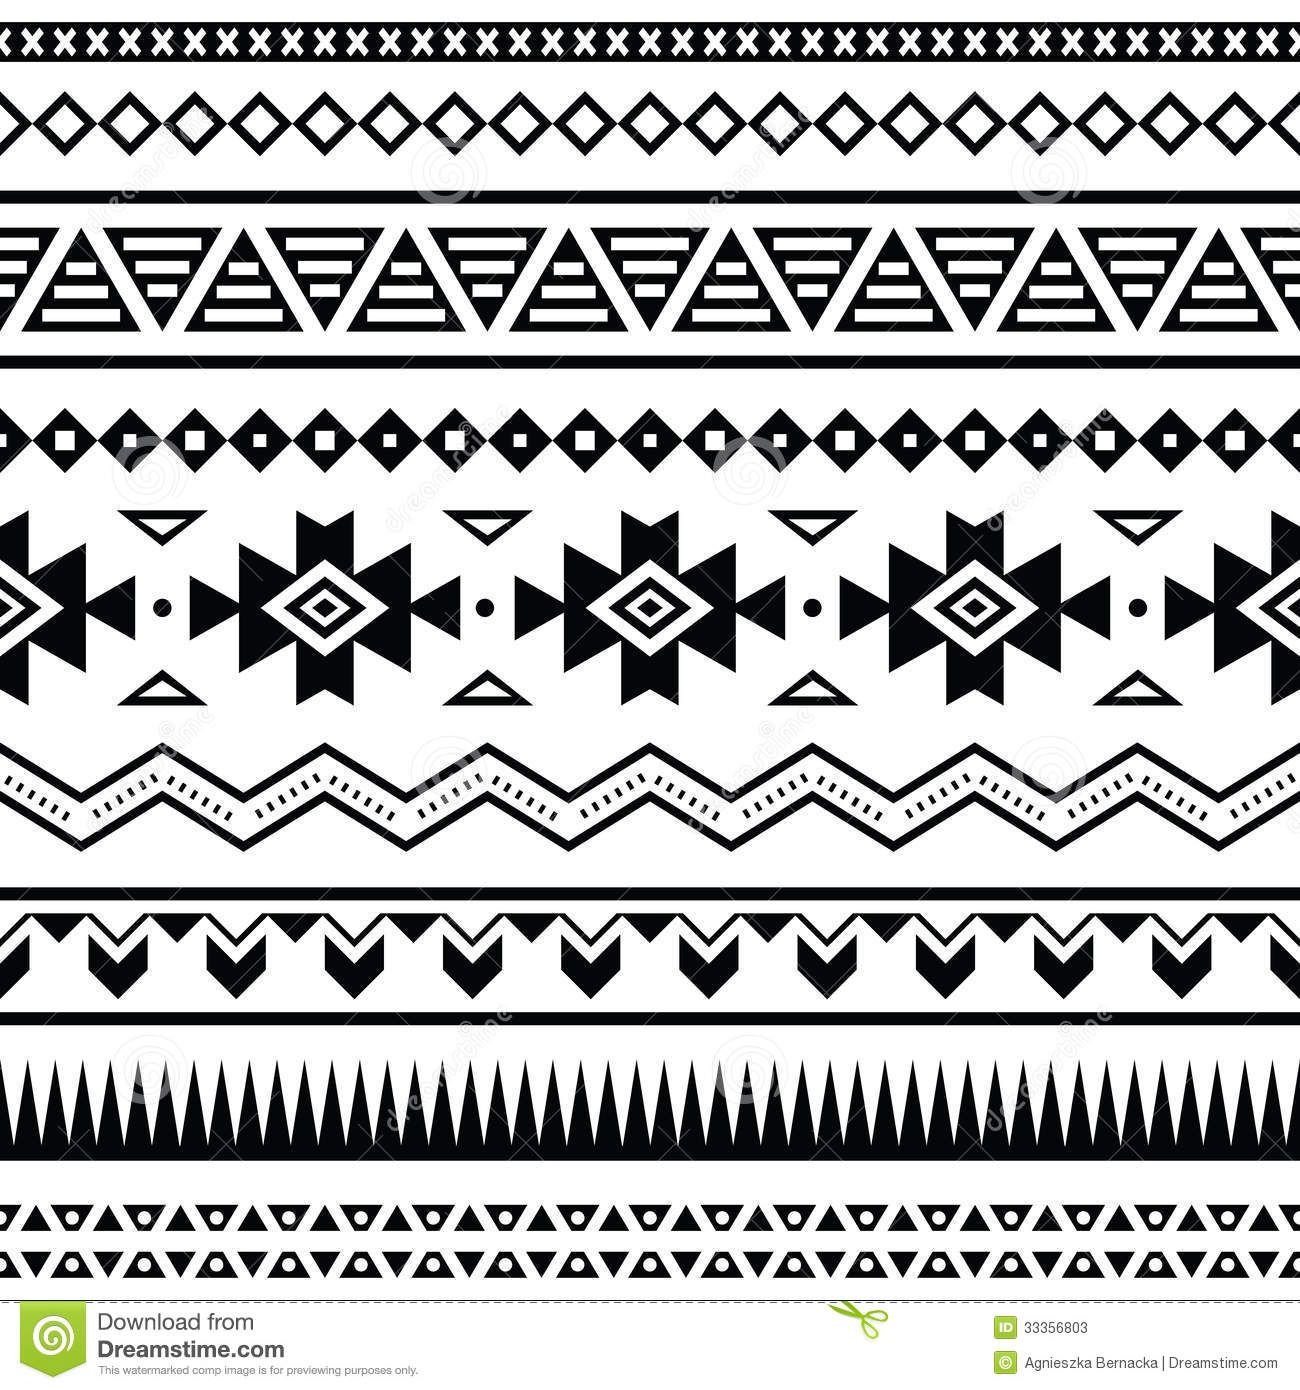 Background geometric mexican patterns seamless vector zigzag maya - Aztec Mexican Seamless Pattern Download From Over 29 Million High Quality Stock Photos Images